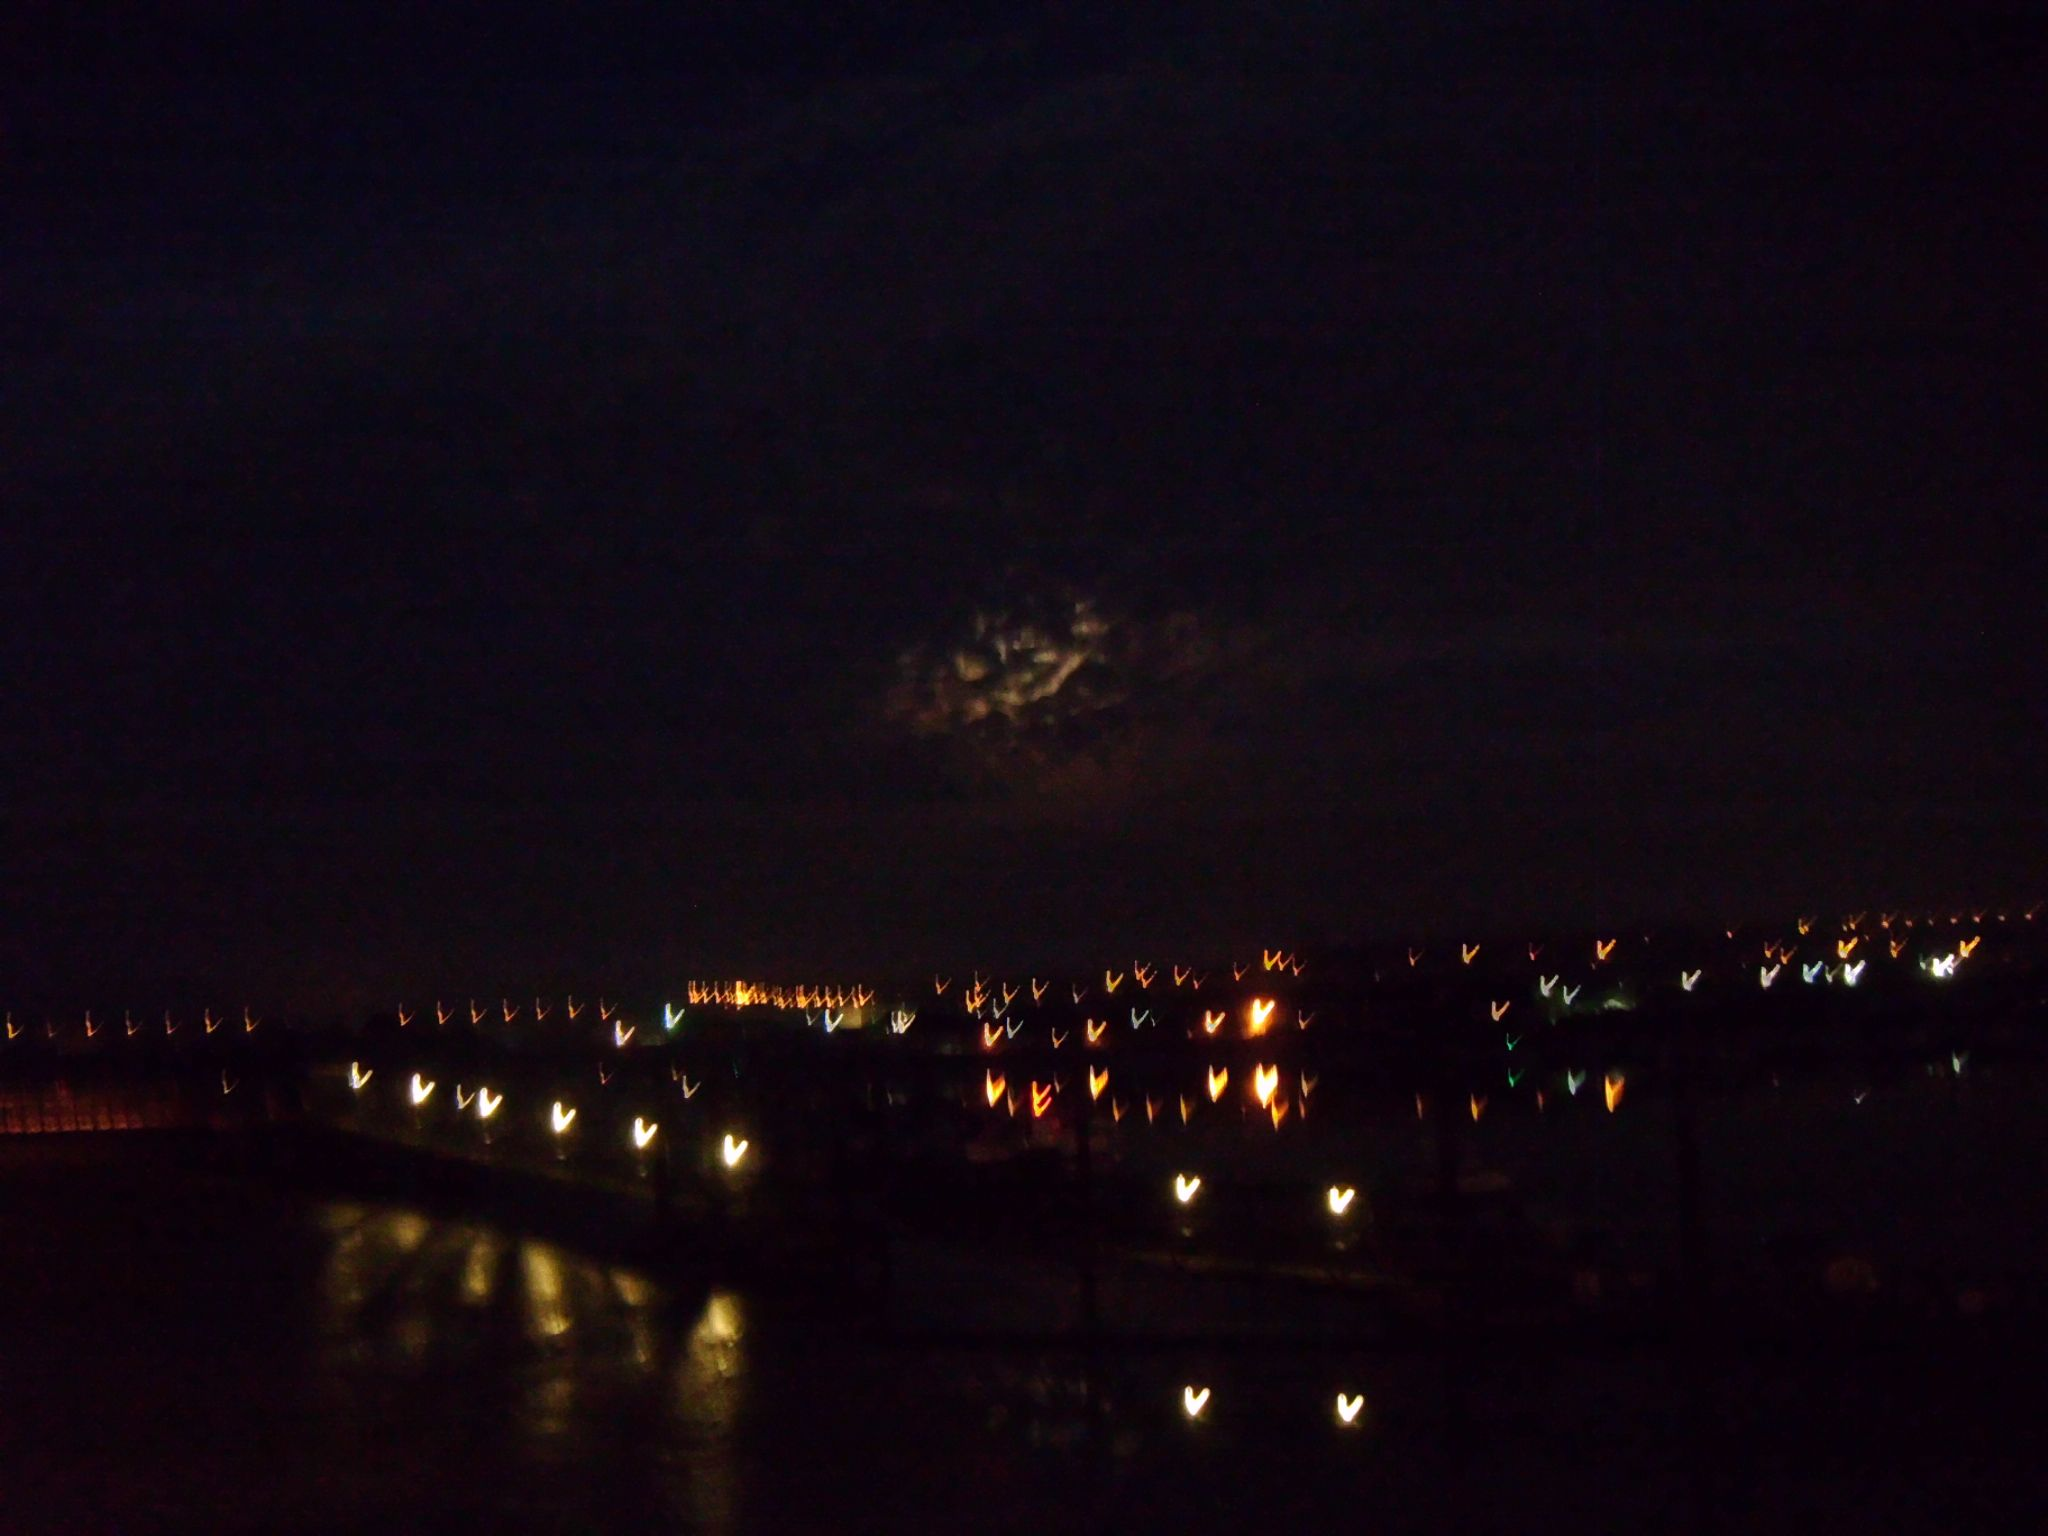 The Medway river at night by didibergman3